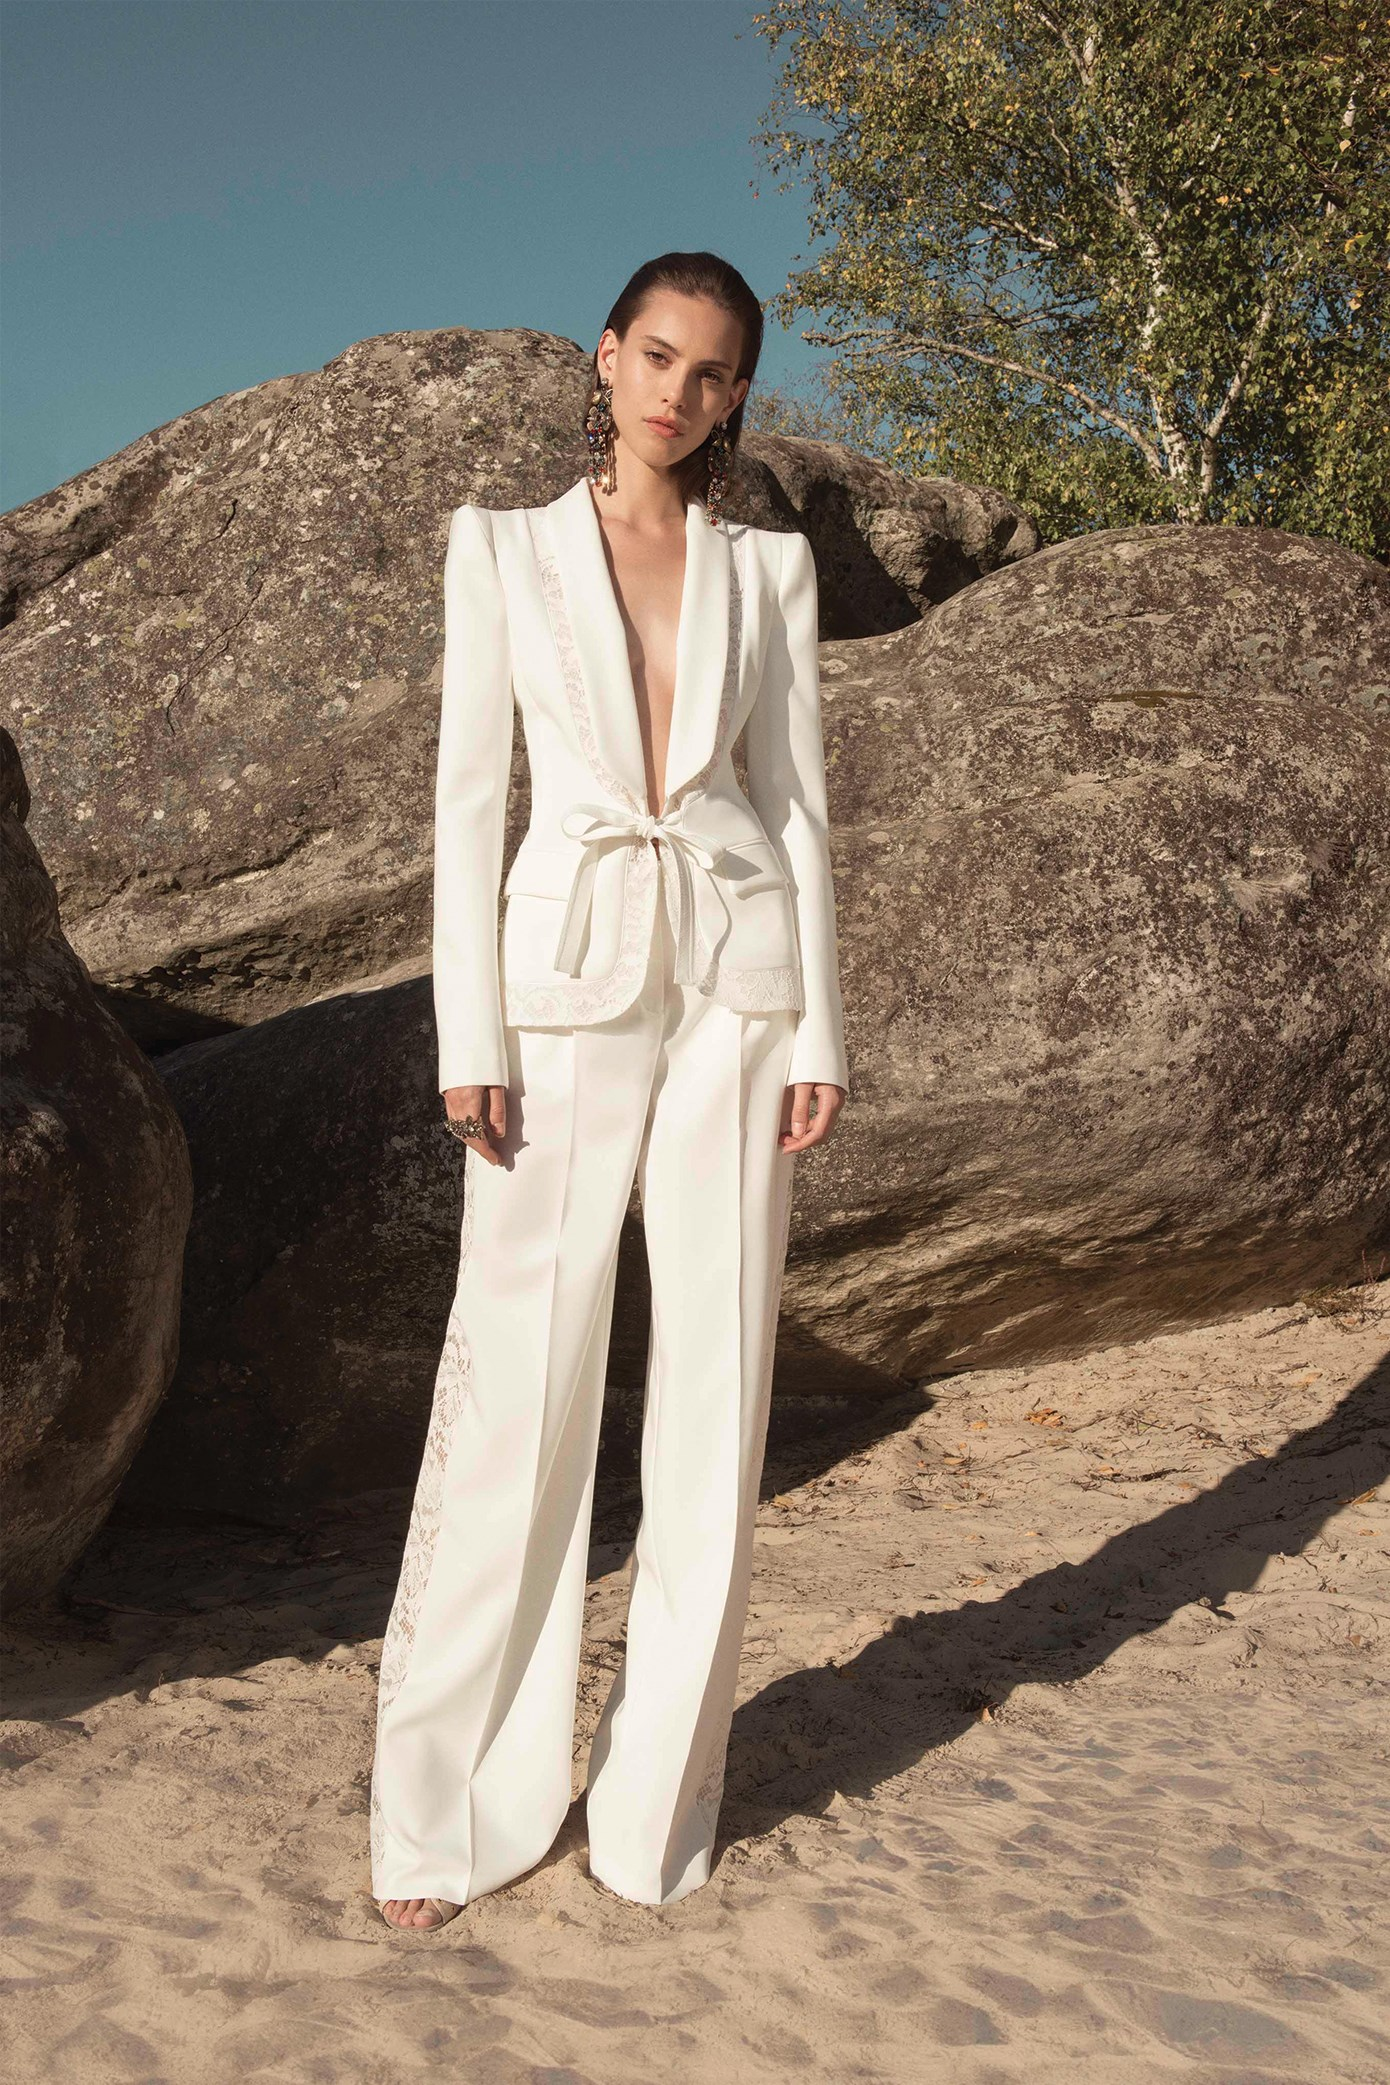 Zuhair Murad  Wedding Suit  - Spring/Summer Collection 2019.